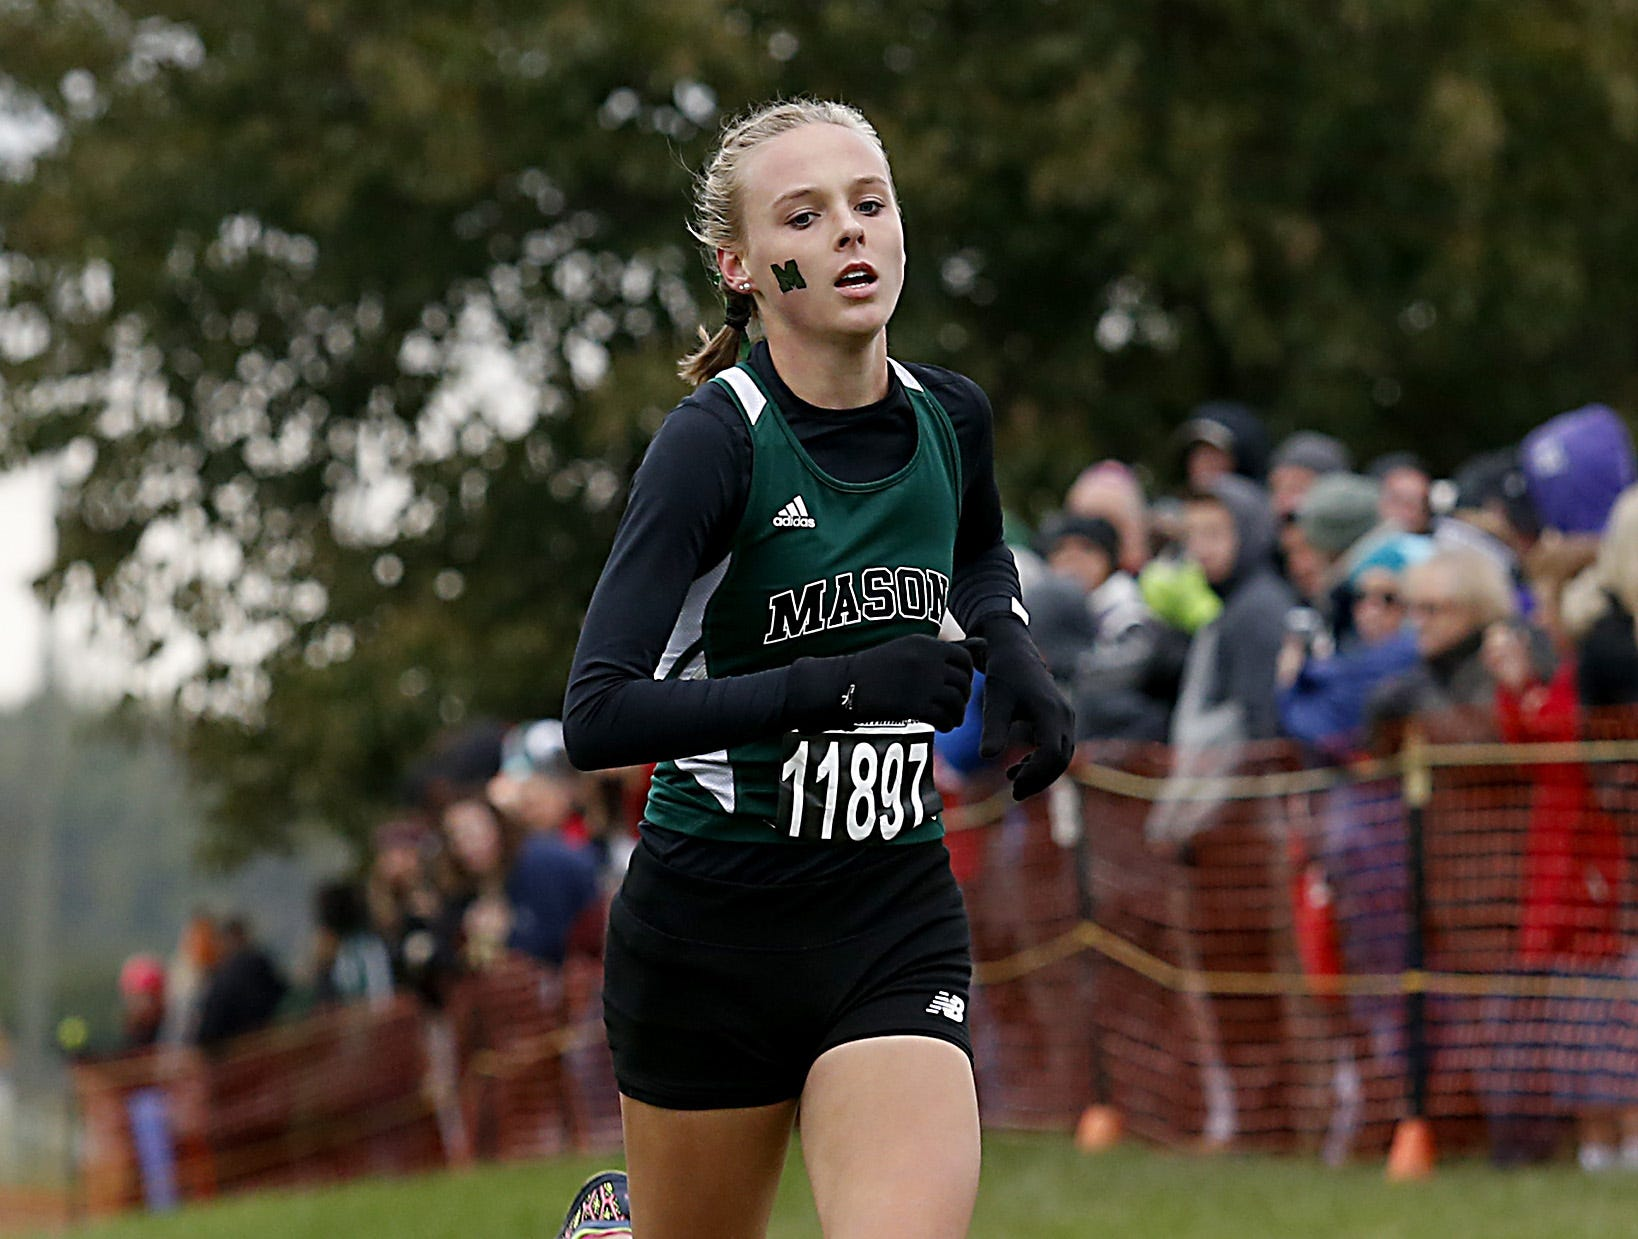 Mason's Maddie Ullom is the first to finish during the Greater Miami Conference Girls and Boys Cross Country Championships at Voice of America Park in West Chester Saturday, Oct. 13, 2018.